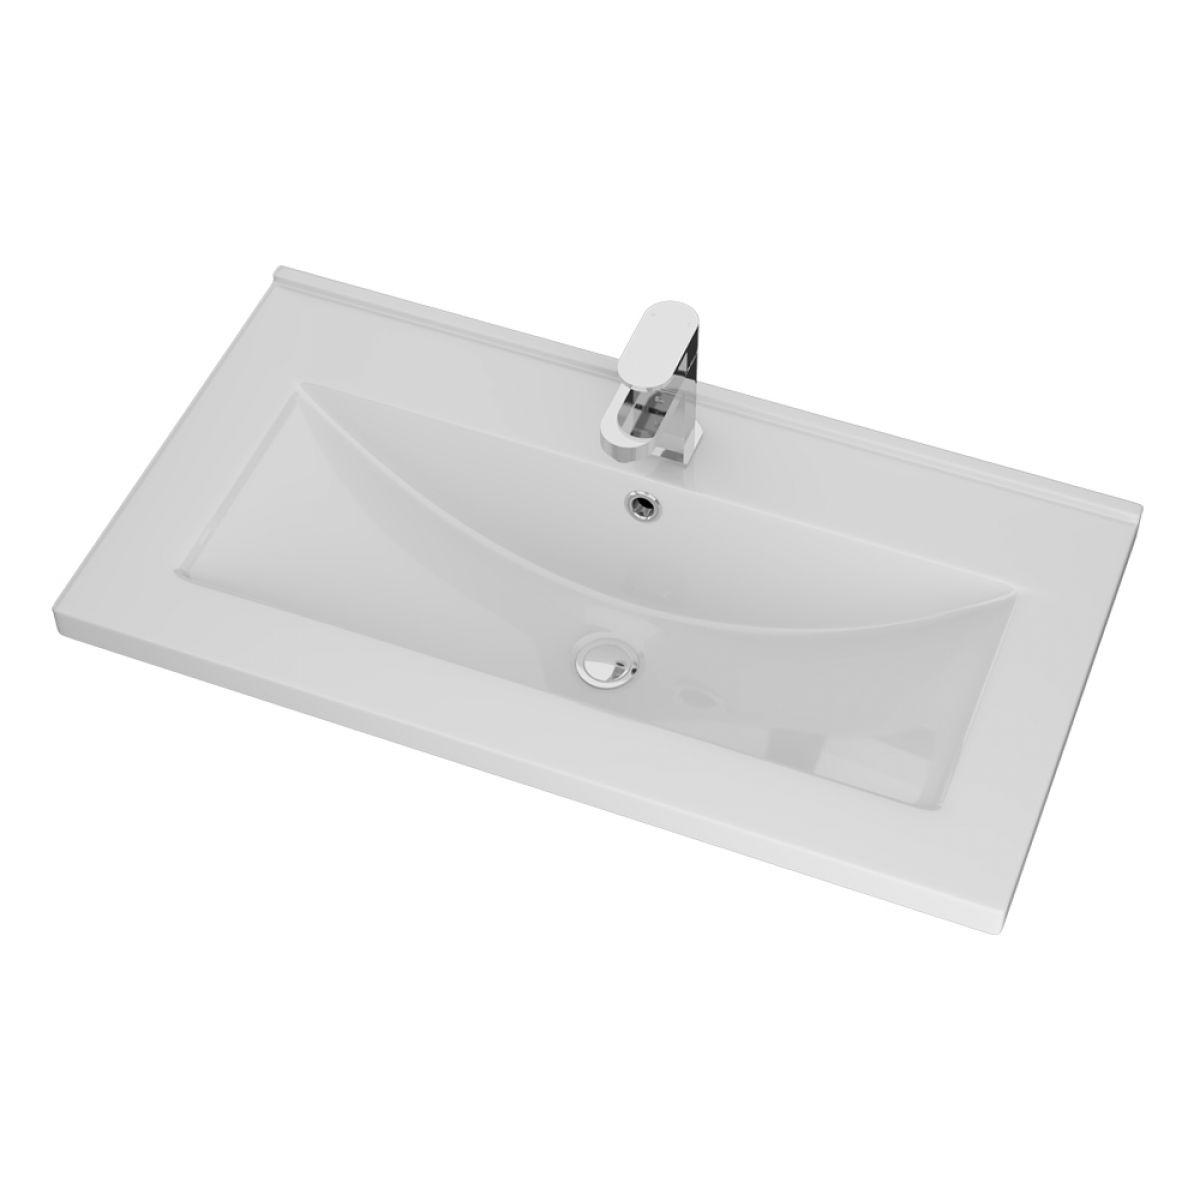 Cassellie Idon Ceramic Mid-Edge Basin 800mm